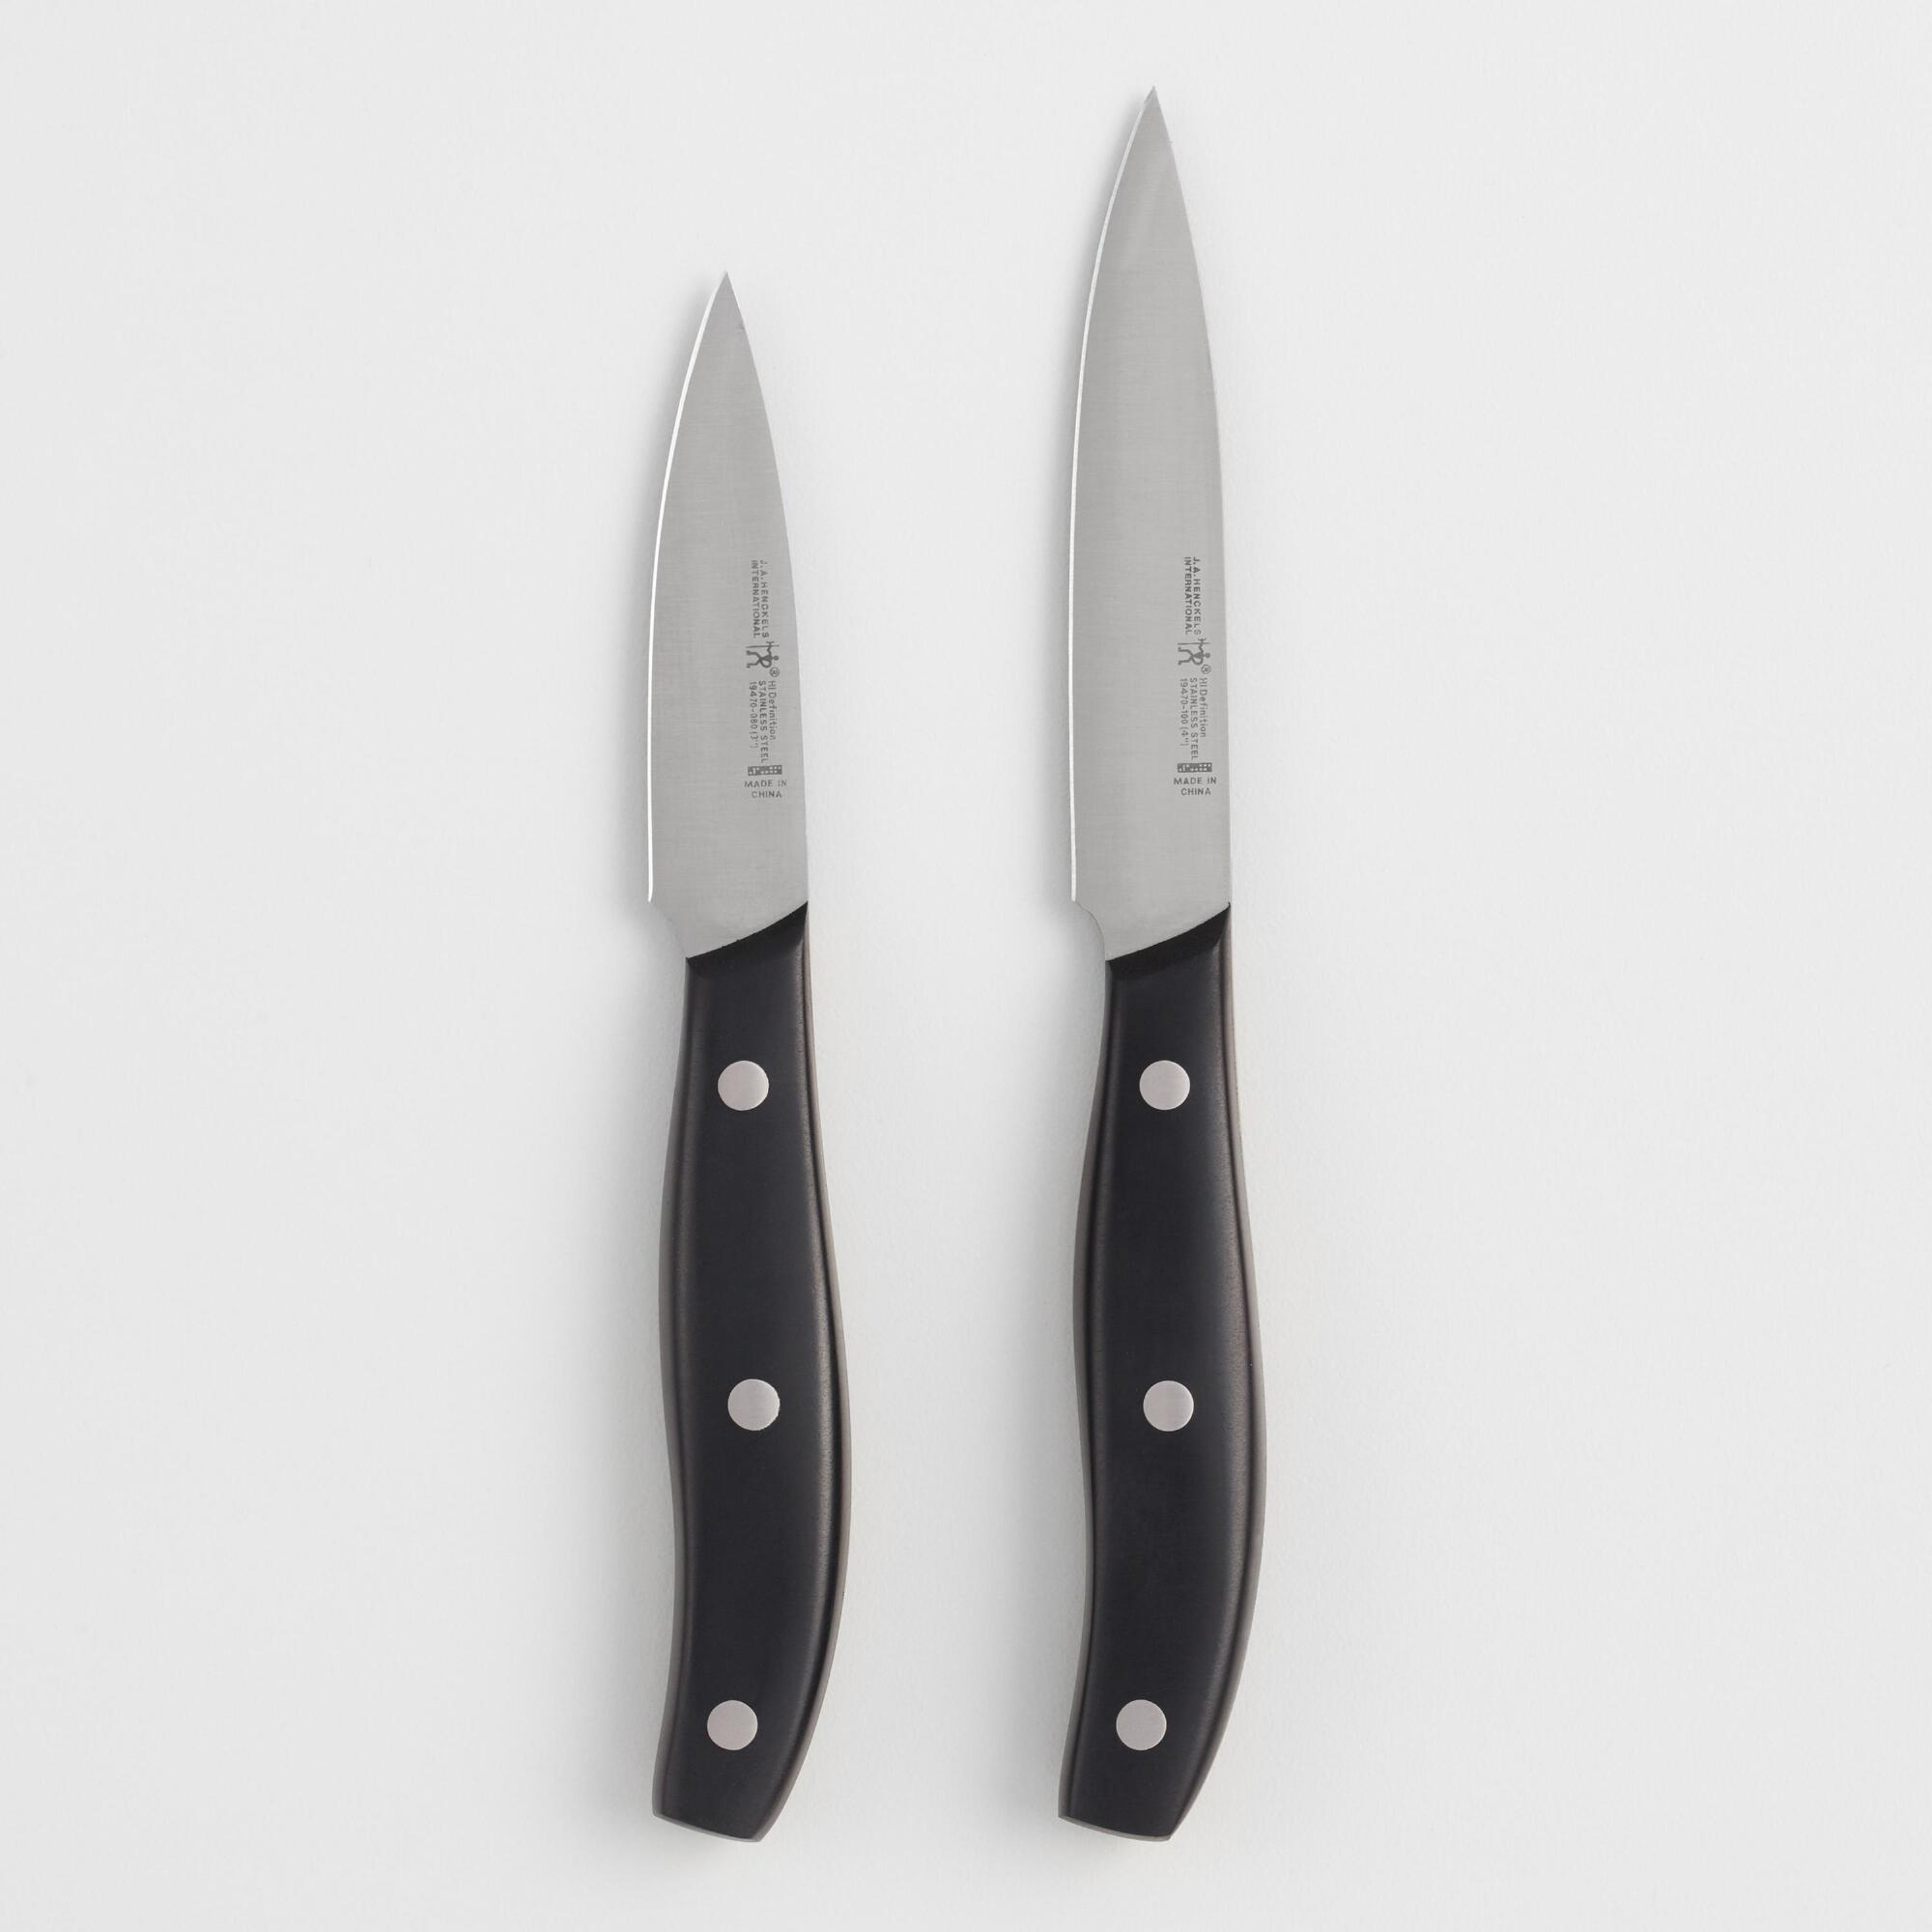 J.A. Henckels Definition Paring Knives 2 Piece Set by World Market